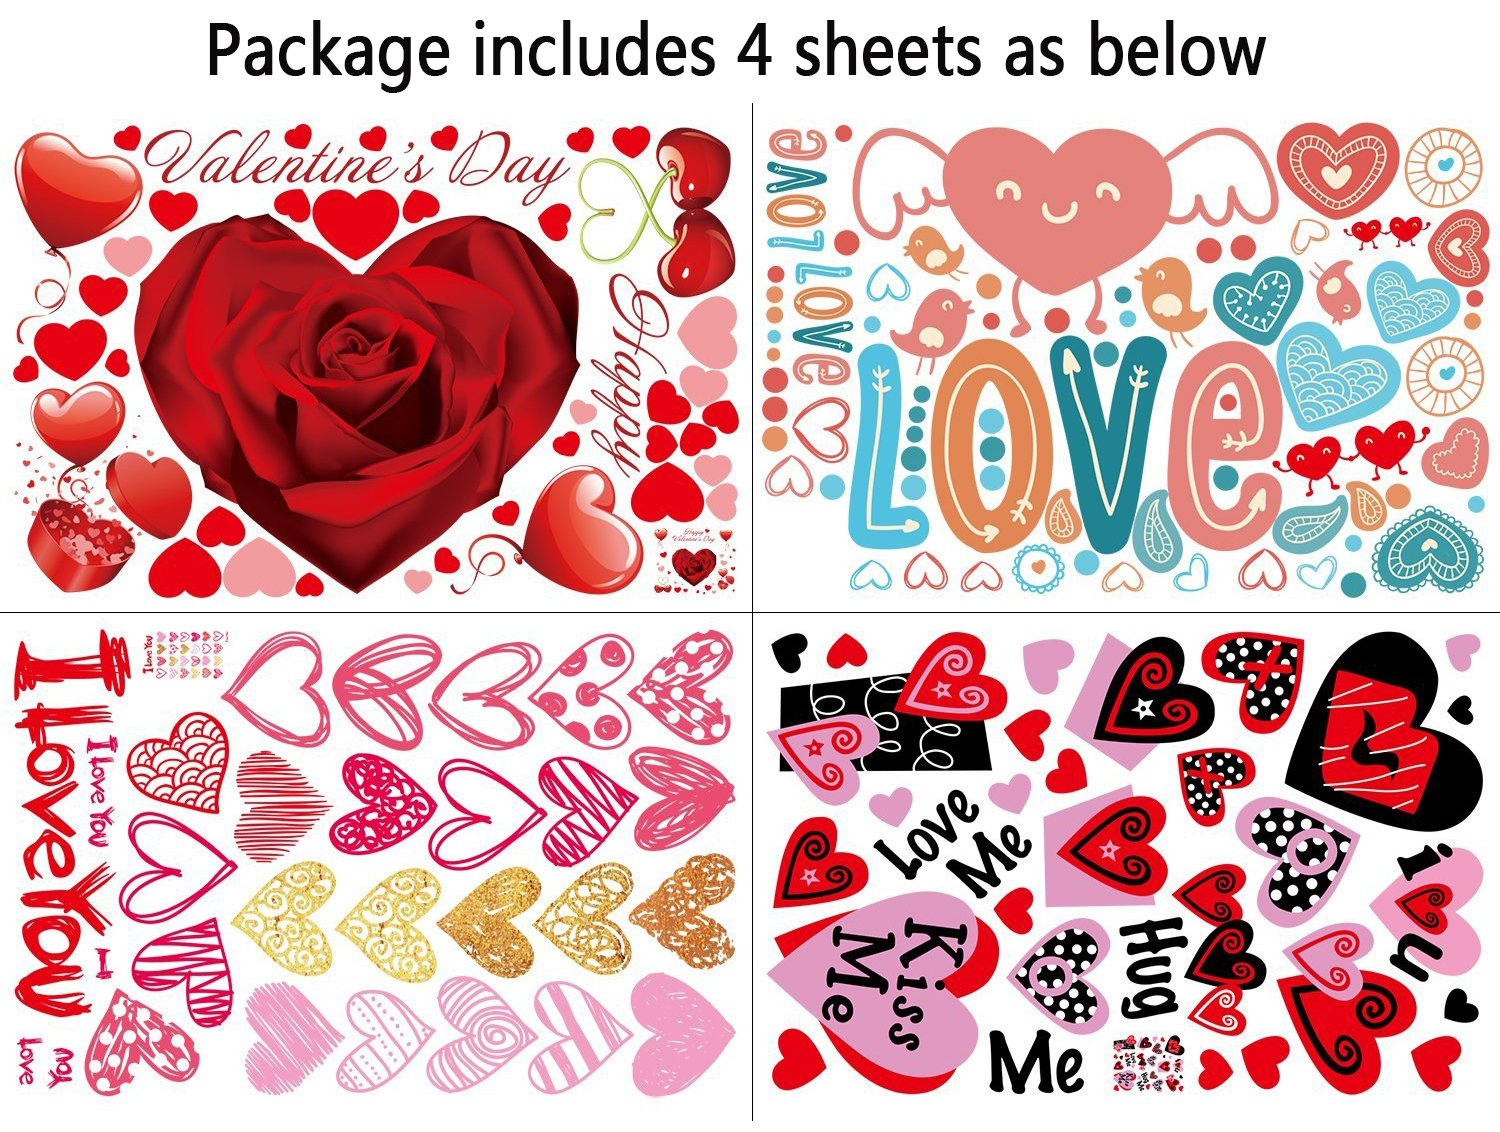 Amazon.com: 140 PCS Valentineu0027s Day Window Clings Heart Stickers Decal    Party Decorations Supplies: Home U0026 Kitchen